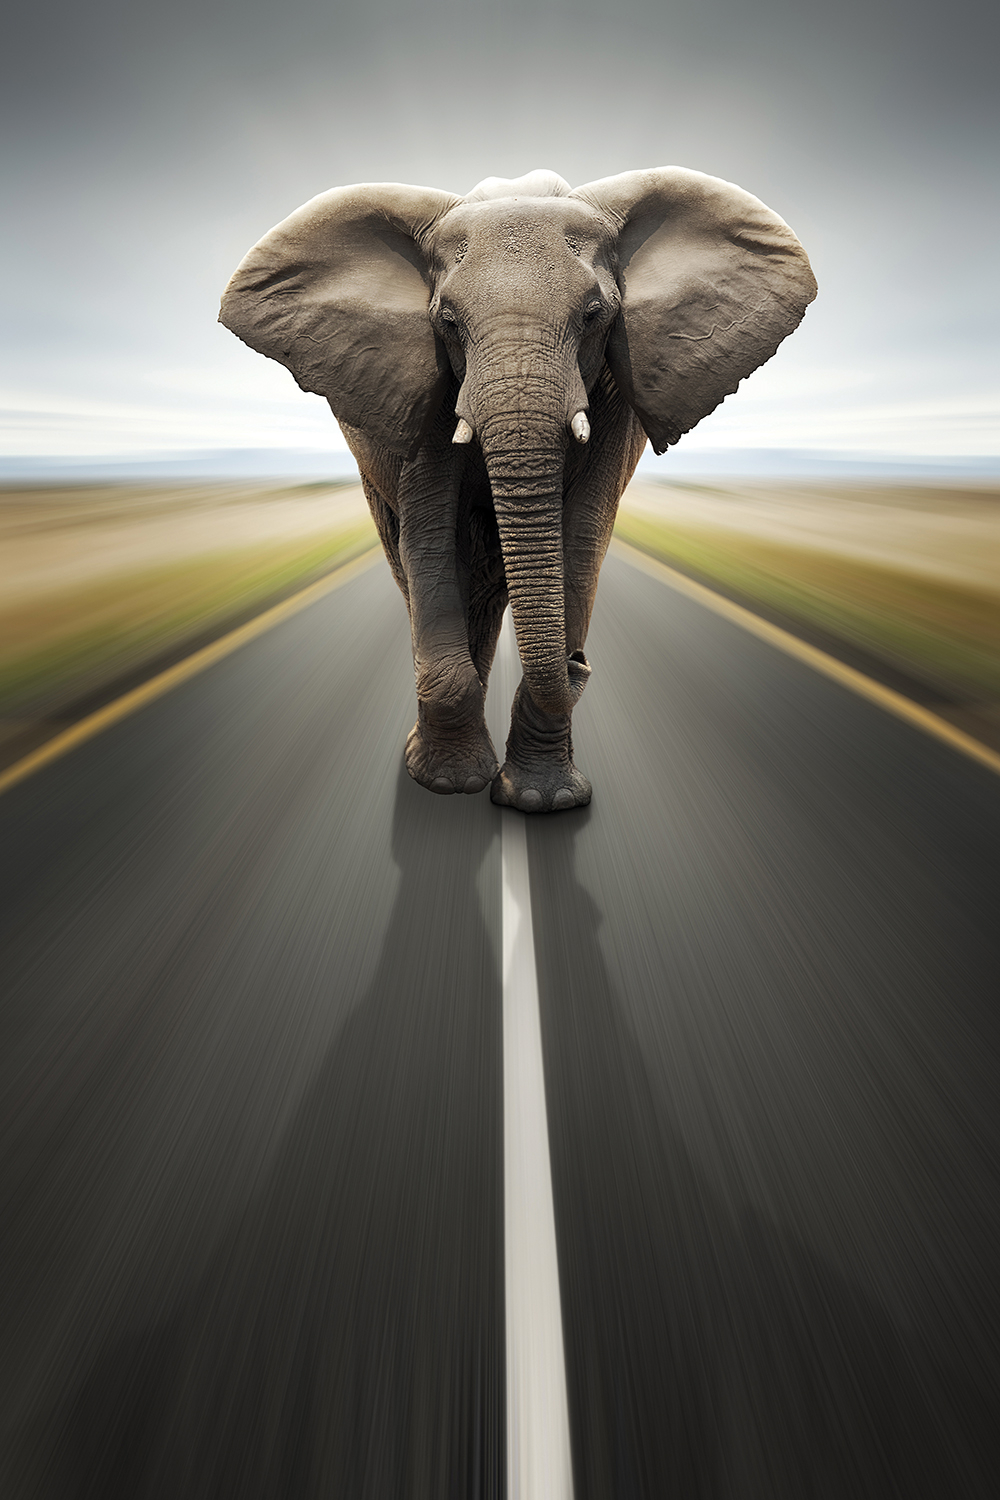 a large elephant walking towards you in the middle of a road